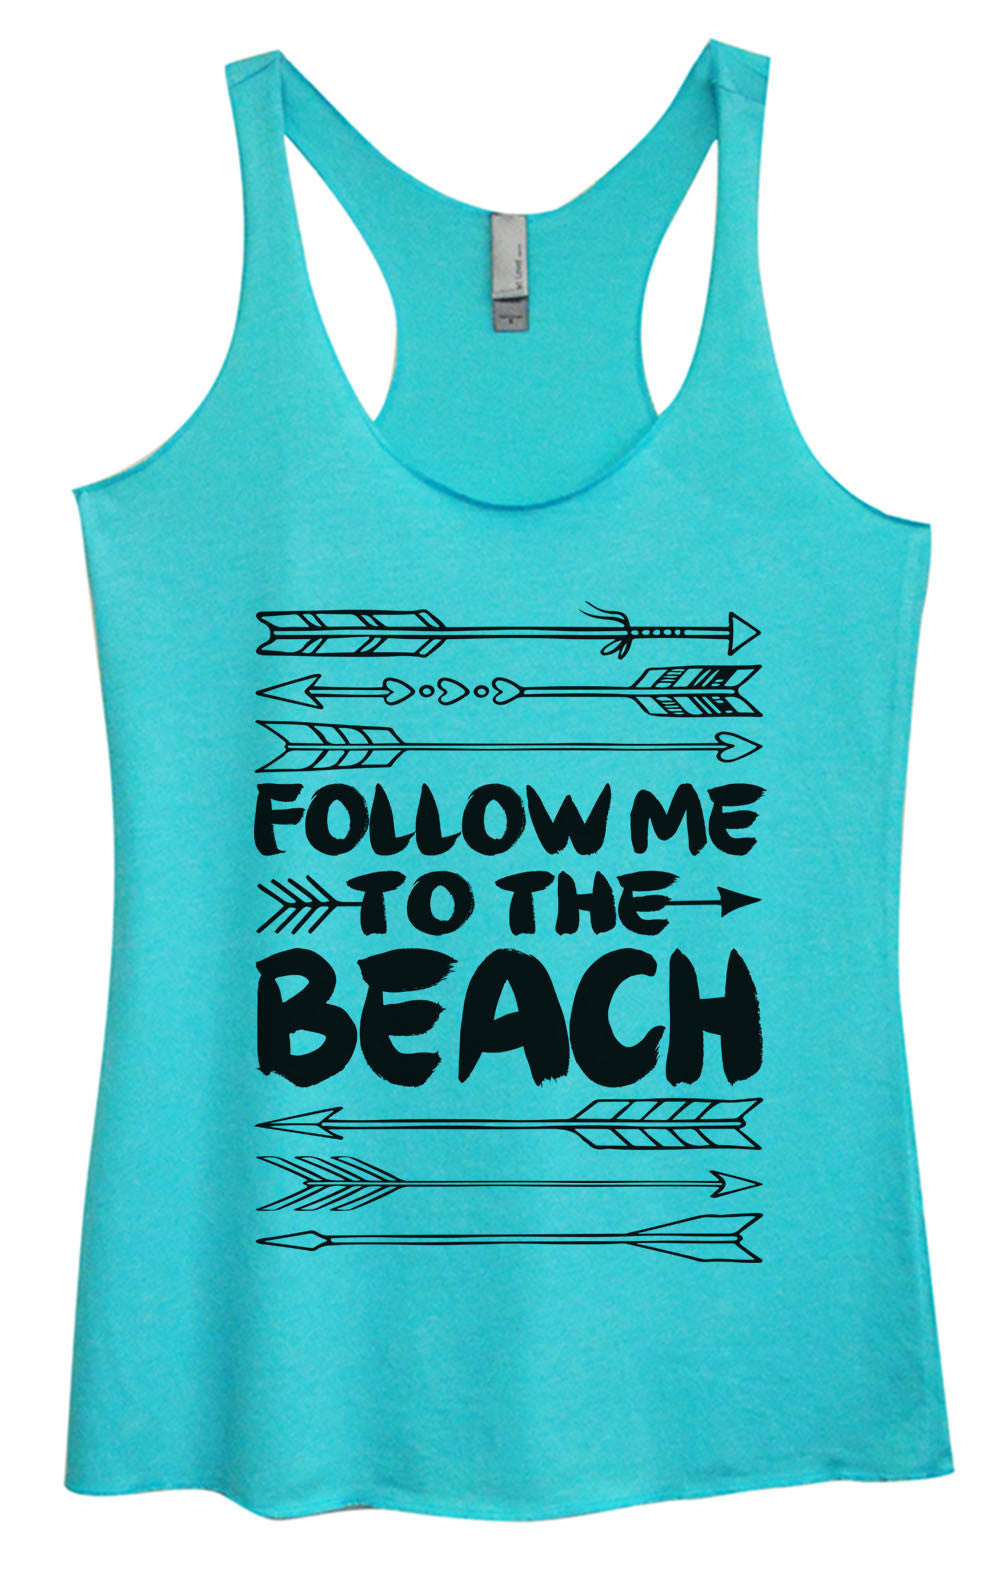 Womens Fashion Triblend Tank Top - Follow Me To The Beach - Tri-931 - Funny Shirts Tank Tops Burnouts and Triblends  - 4